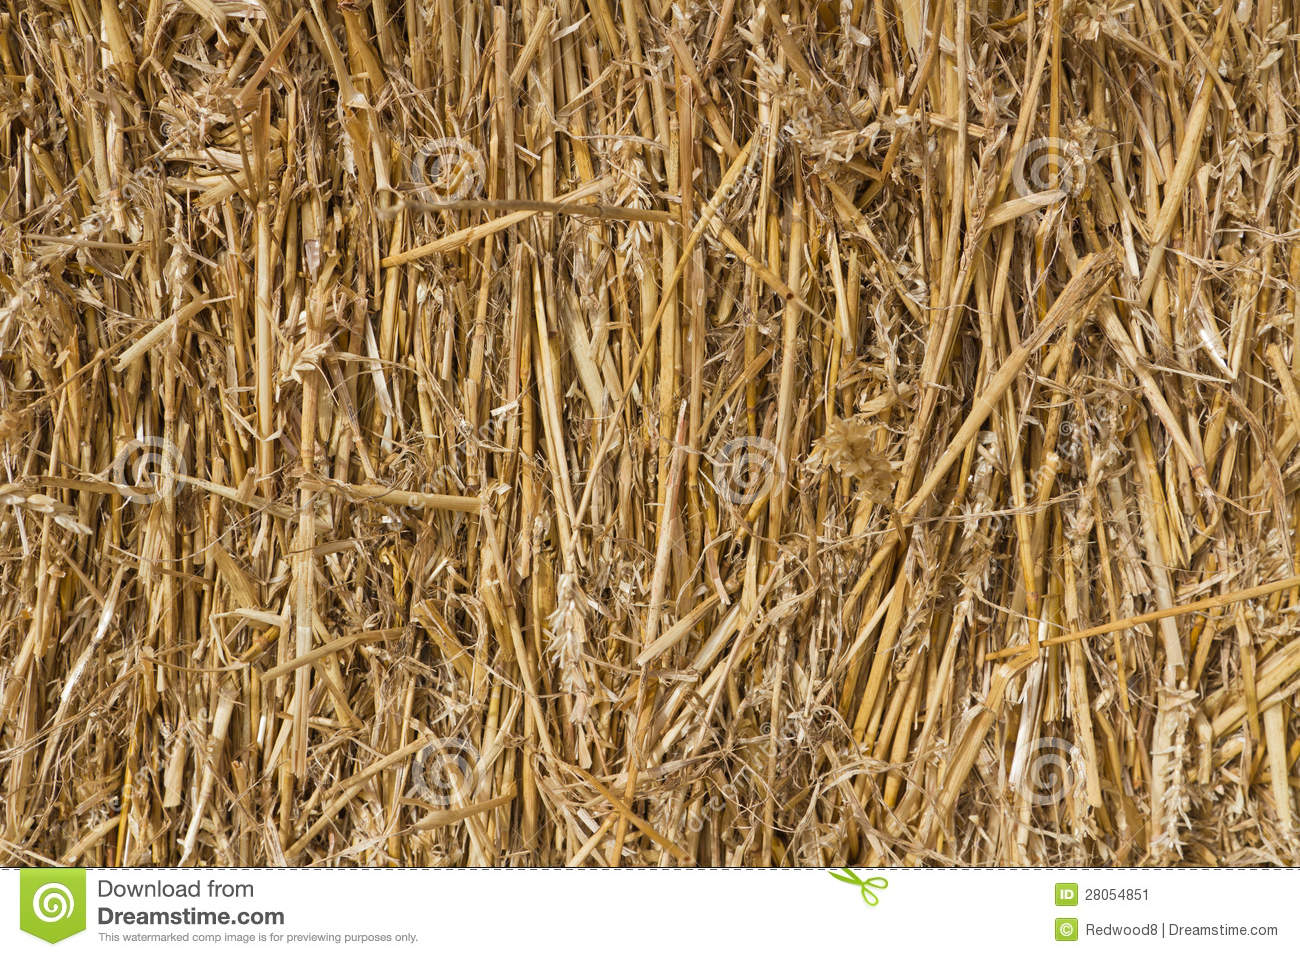 No Credit Check Credit Cards >> Wheat Straw Stock Image - Image: 28054851